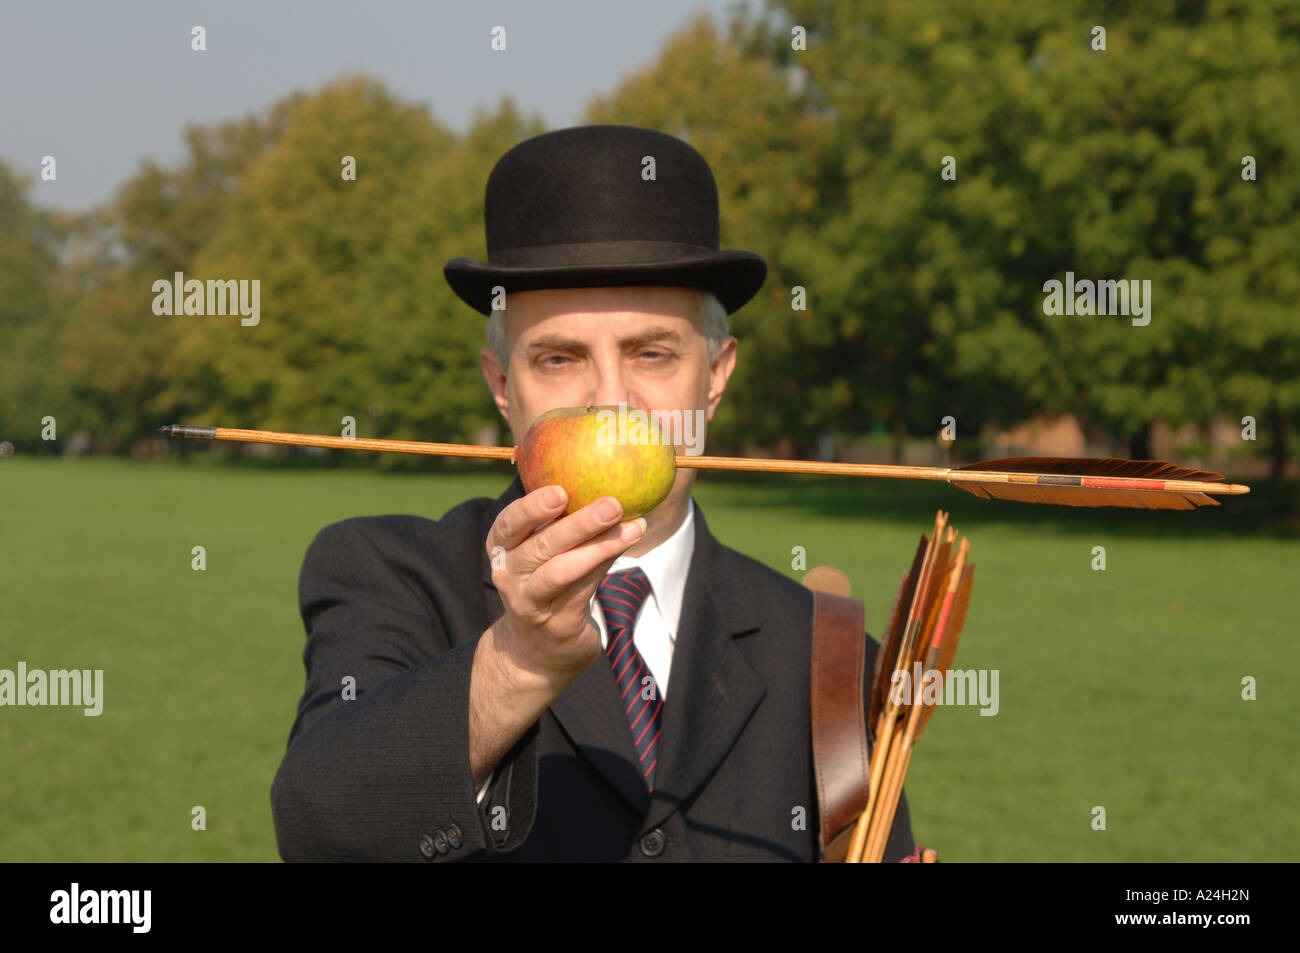 City gent holding an apple with an arrow through it - Stock Image